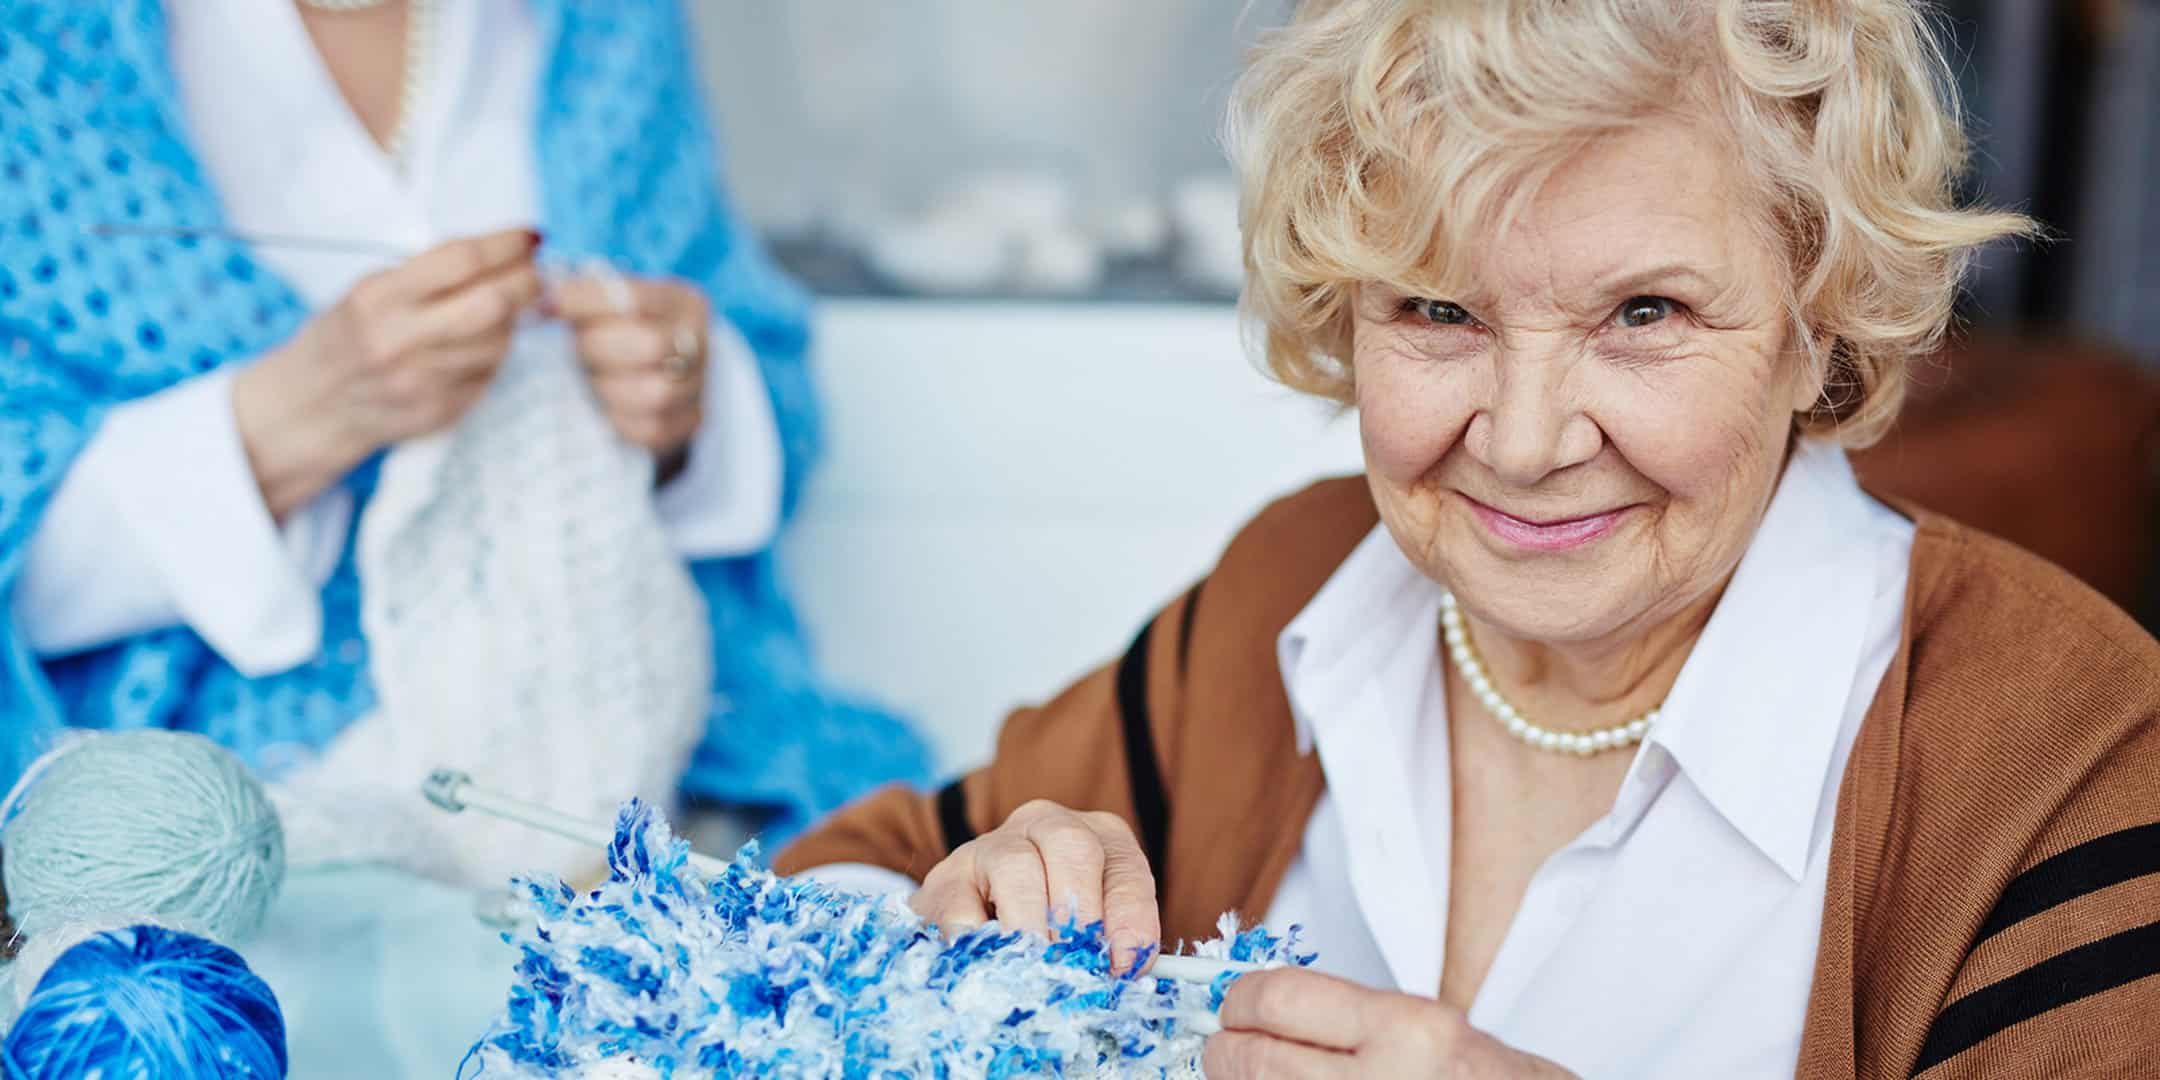 Crafts For Seniors 52 Fun And Simple Ideas That Inspire